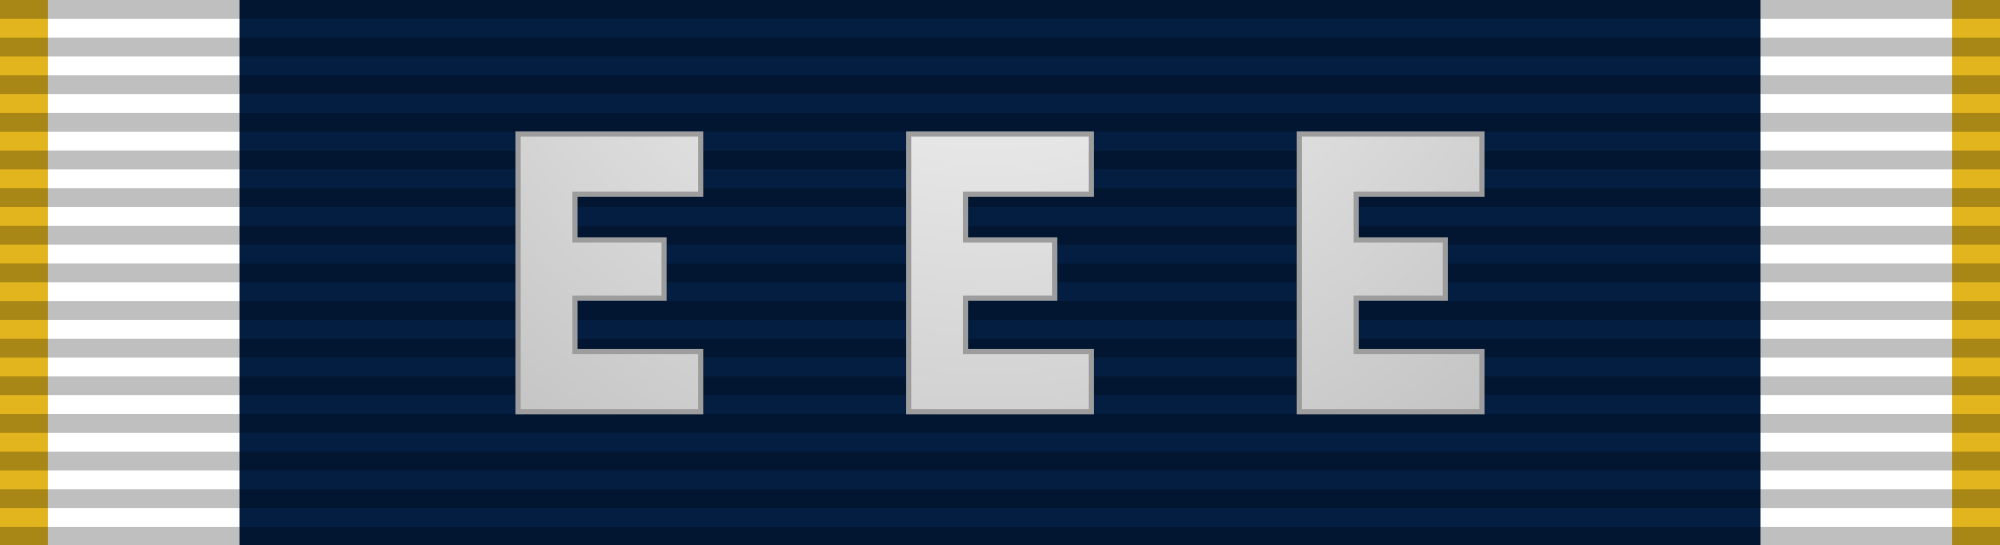 Battle-e-ribbon 3rd award.png